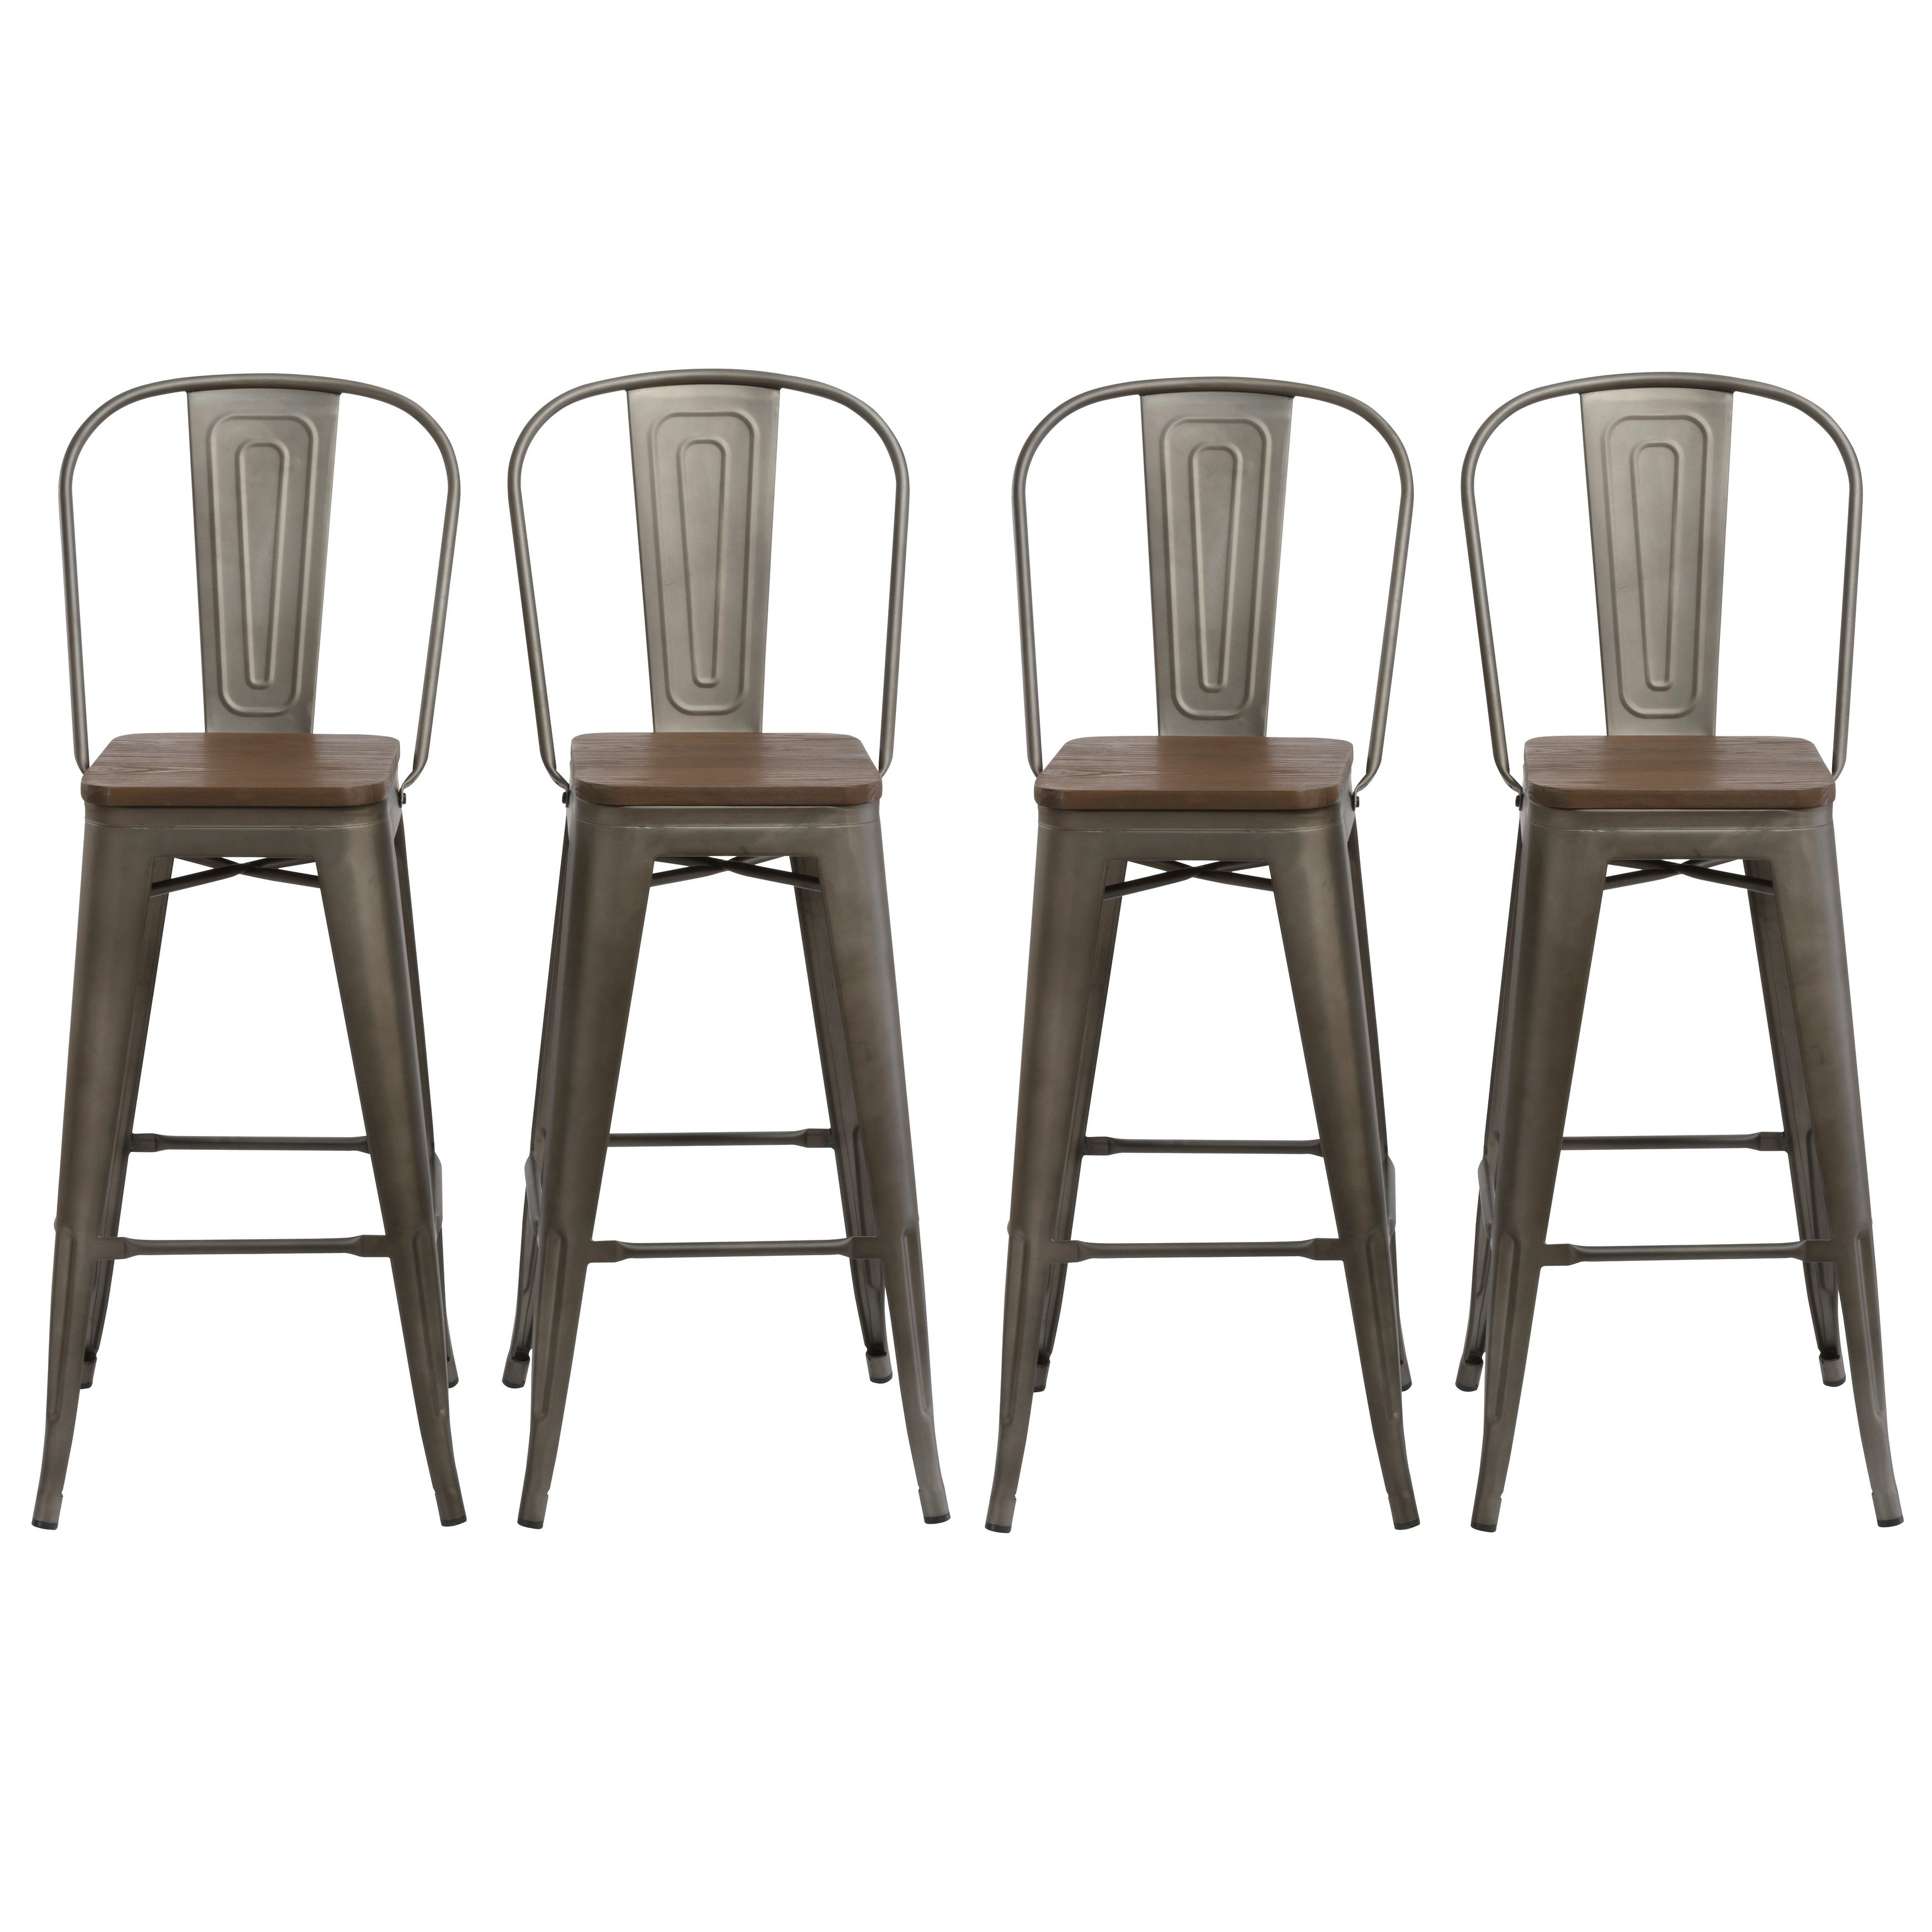 Antique Bronze Distressed Rustic Wood 30 High Back Chair Bar Stool Set Of 4 Barstools